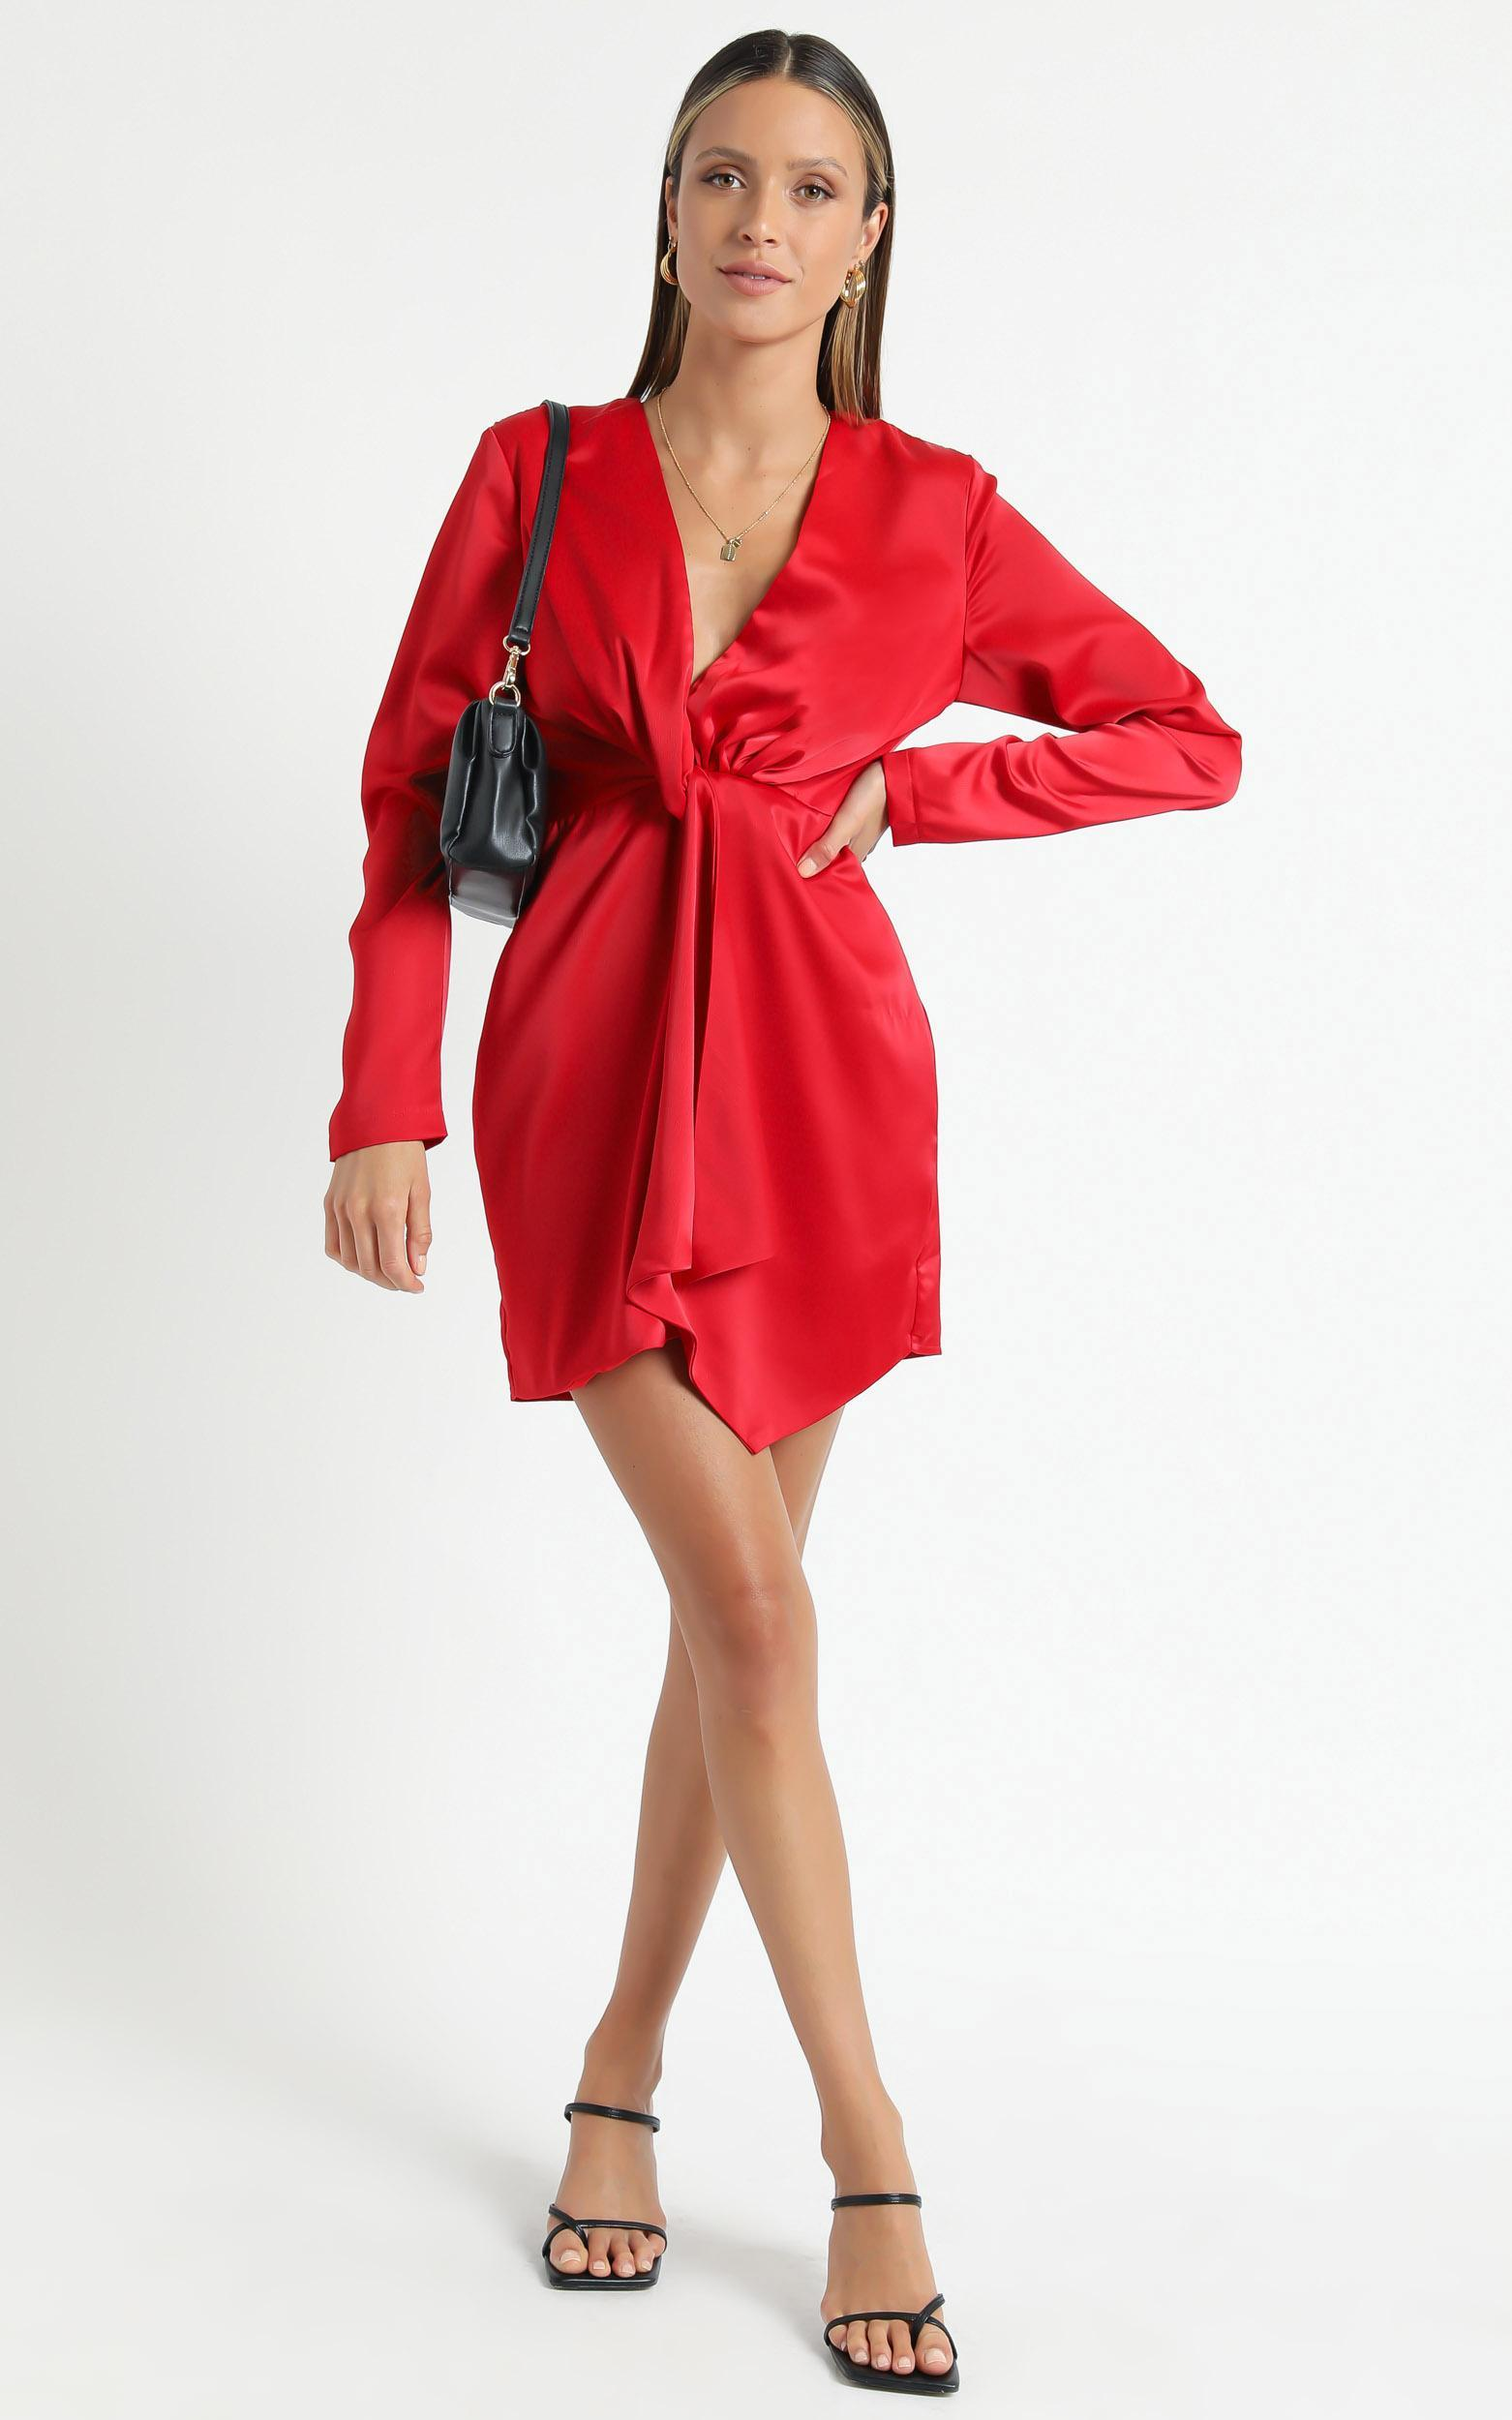 Stop Thinking About It Dress in Red Satin - 6 (XS), Red, hi-res image number null